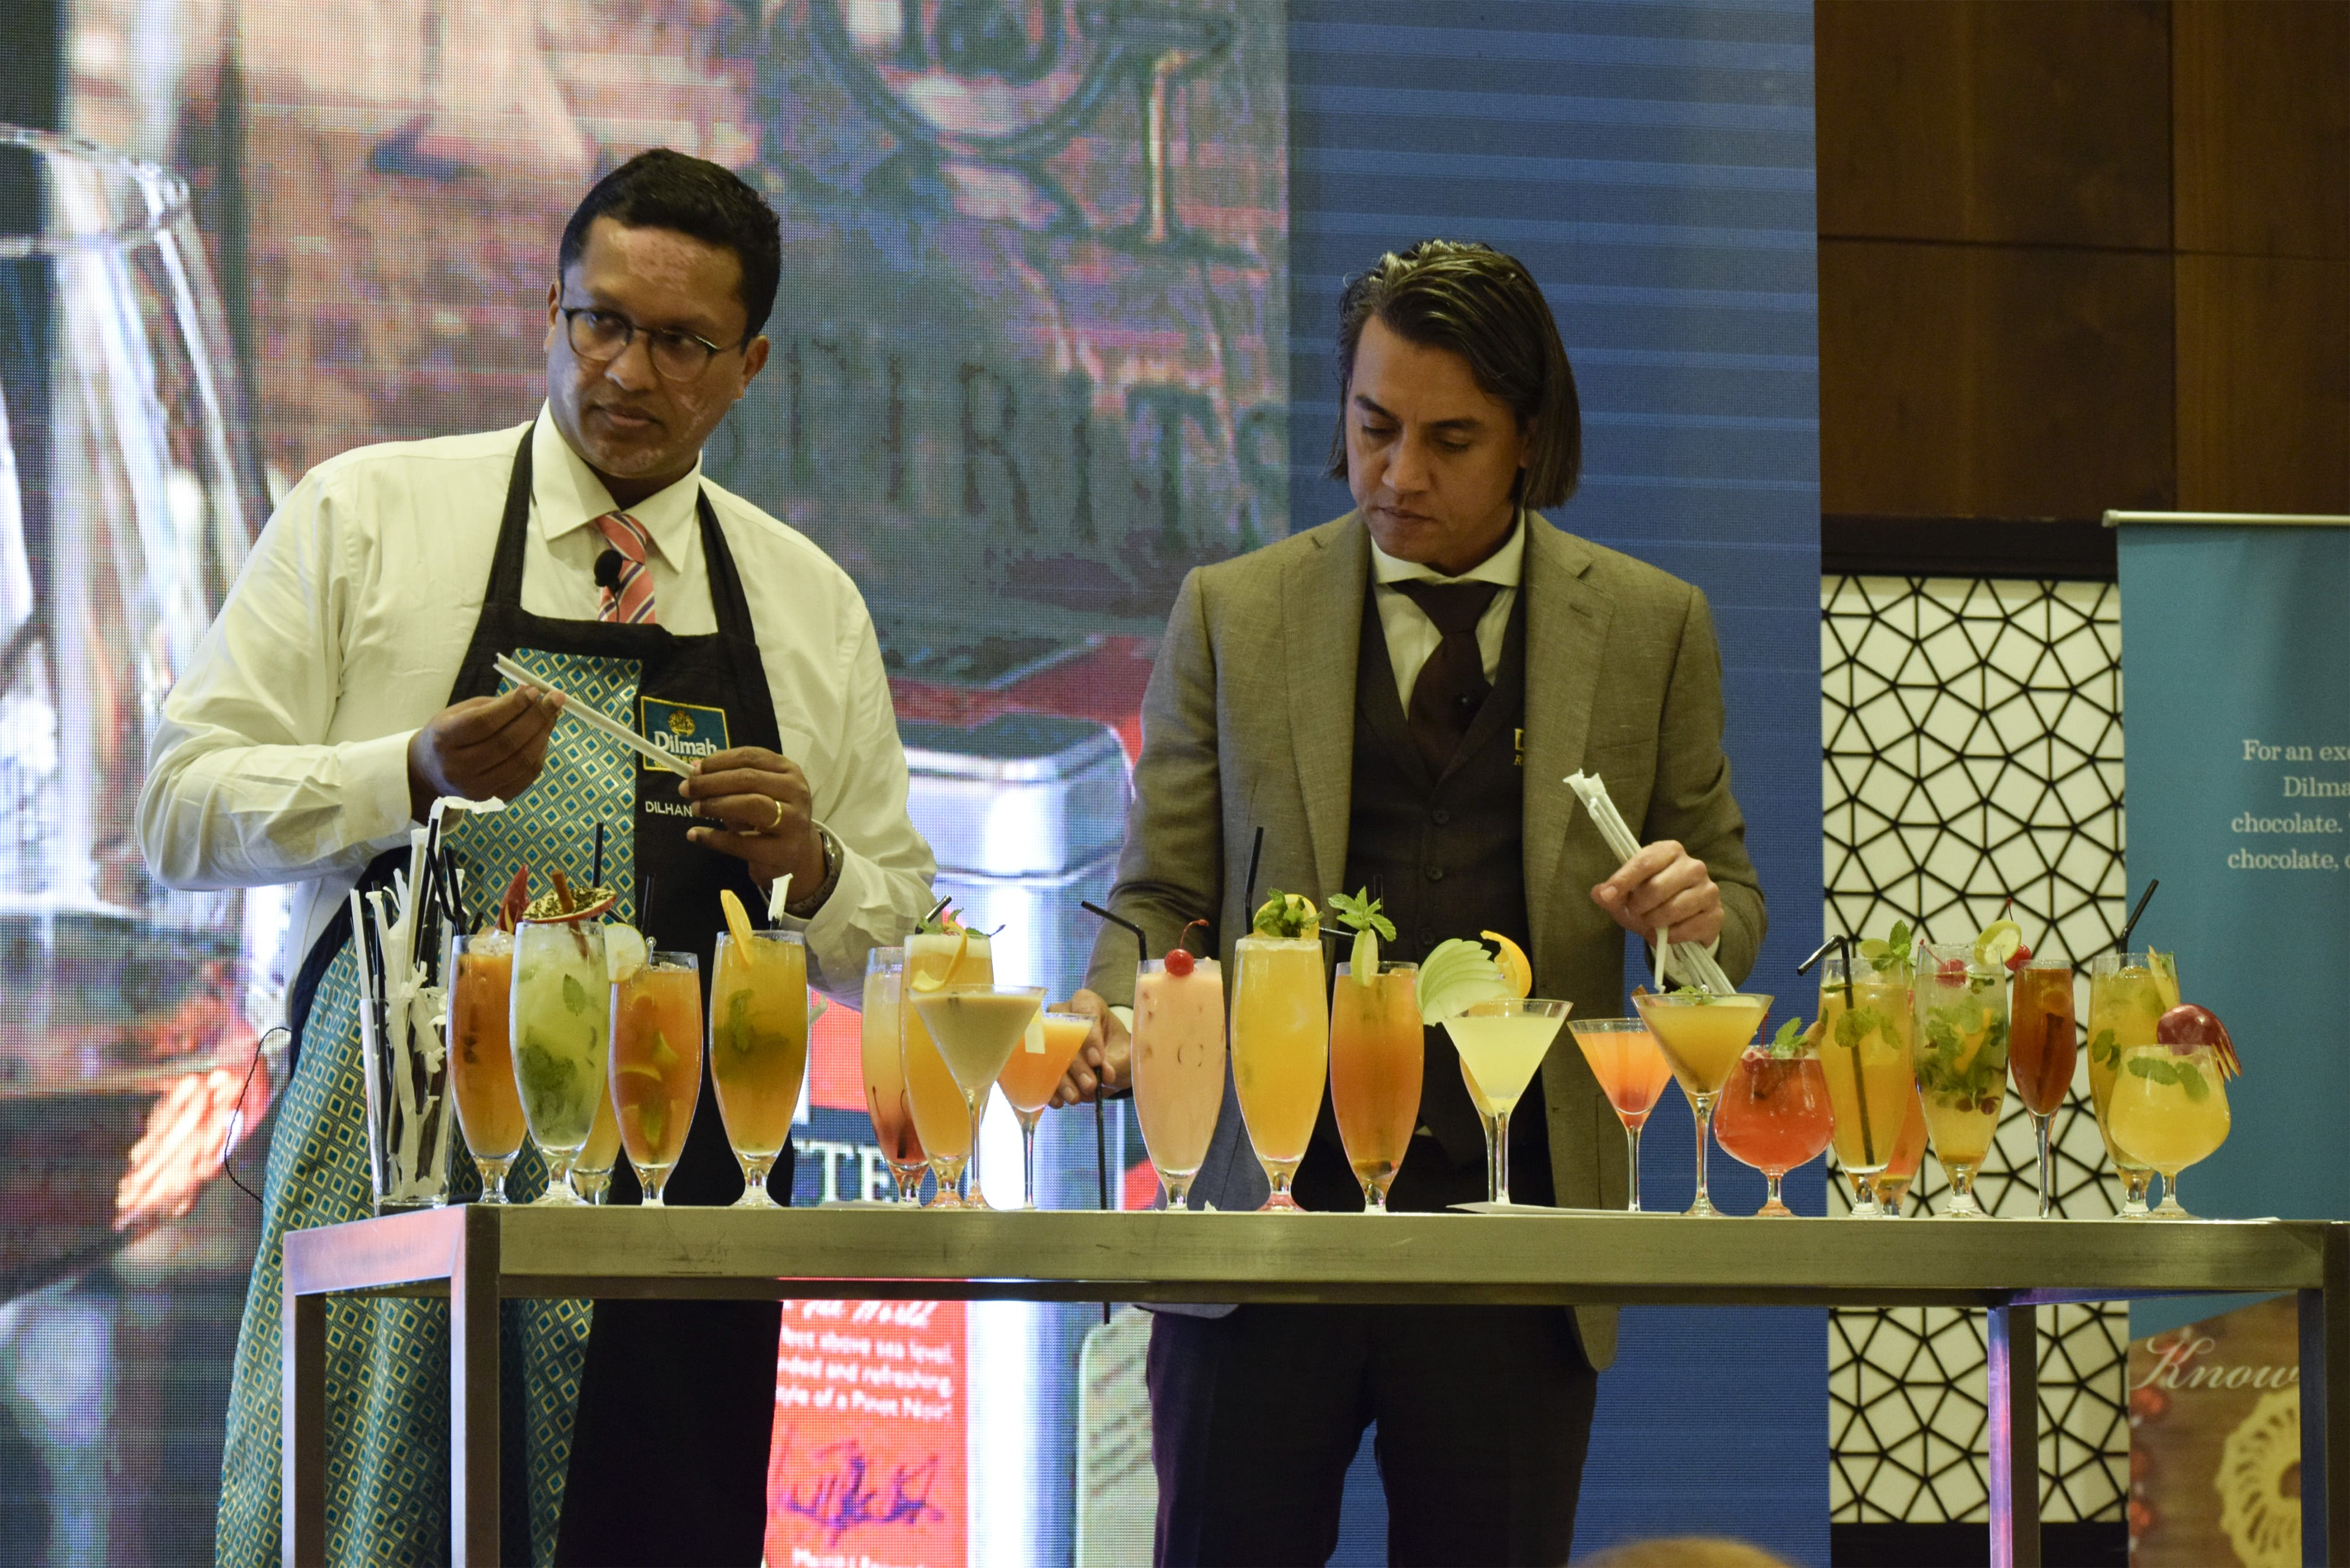 Dilhan & Robert judging the best tea inspired drink